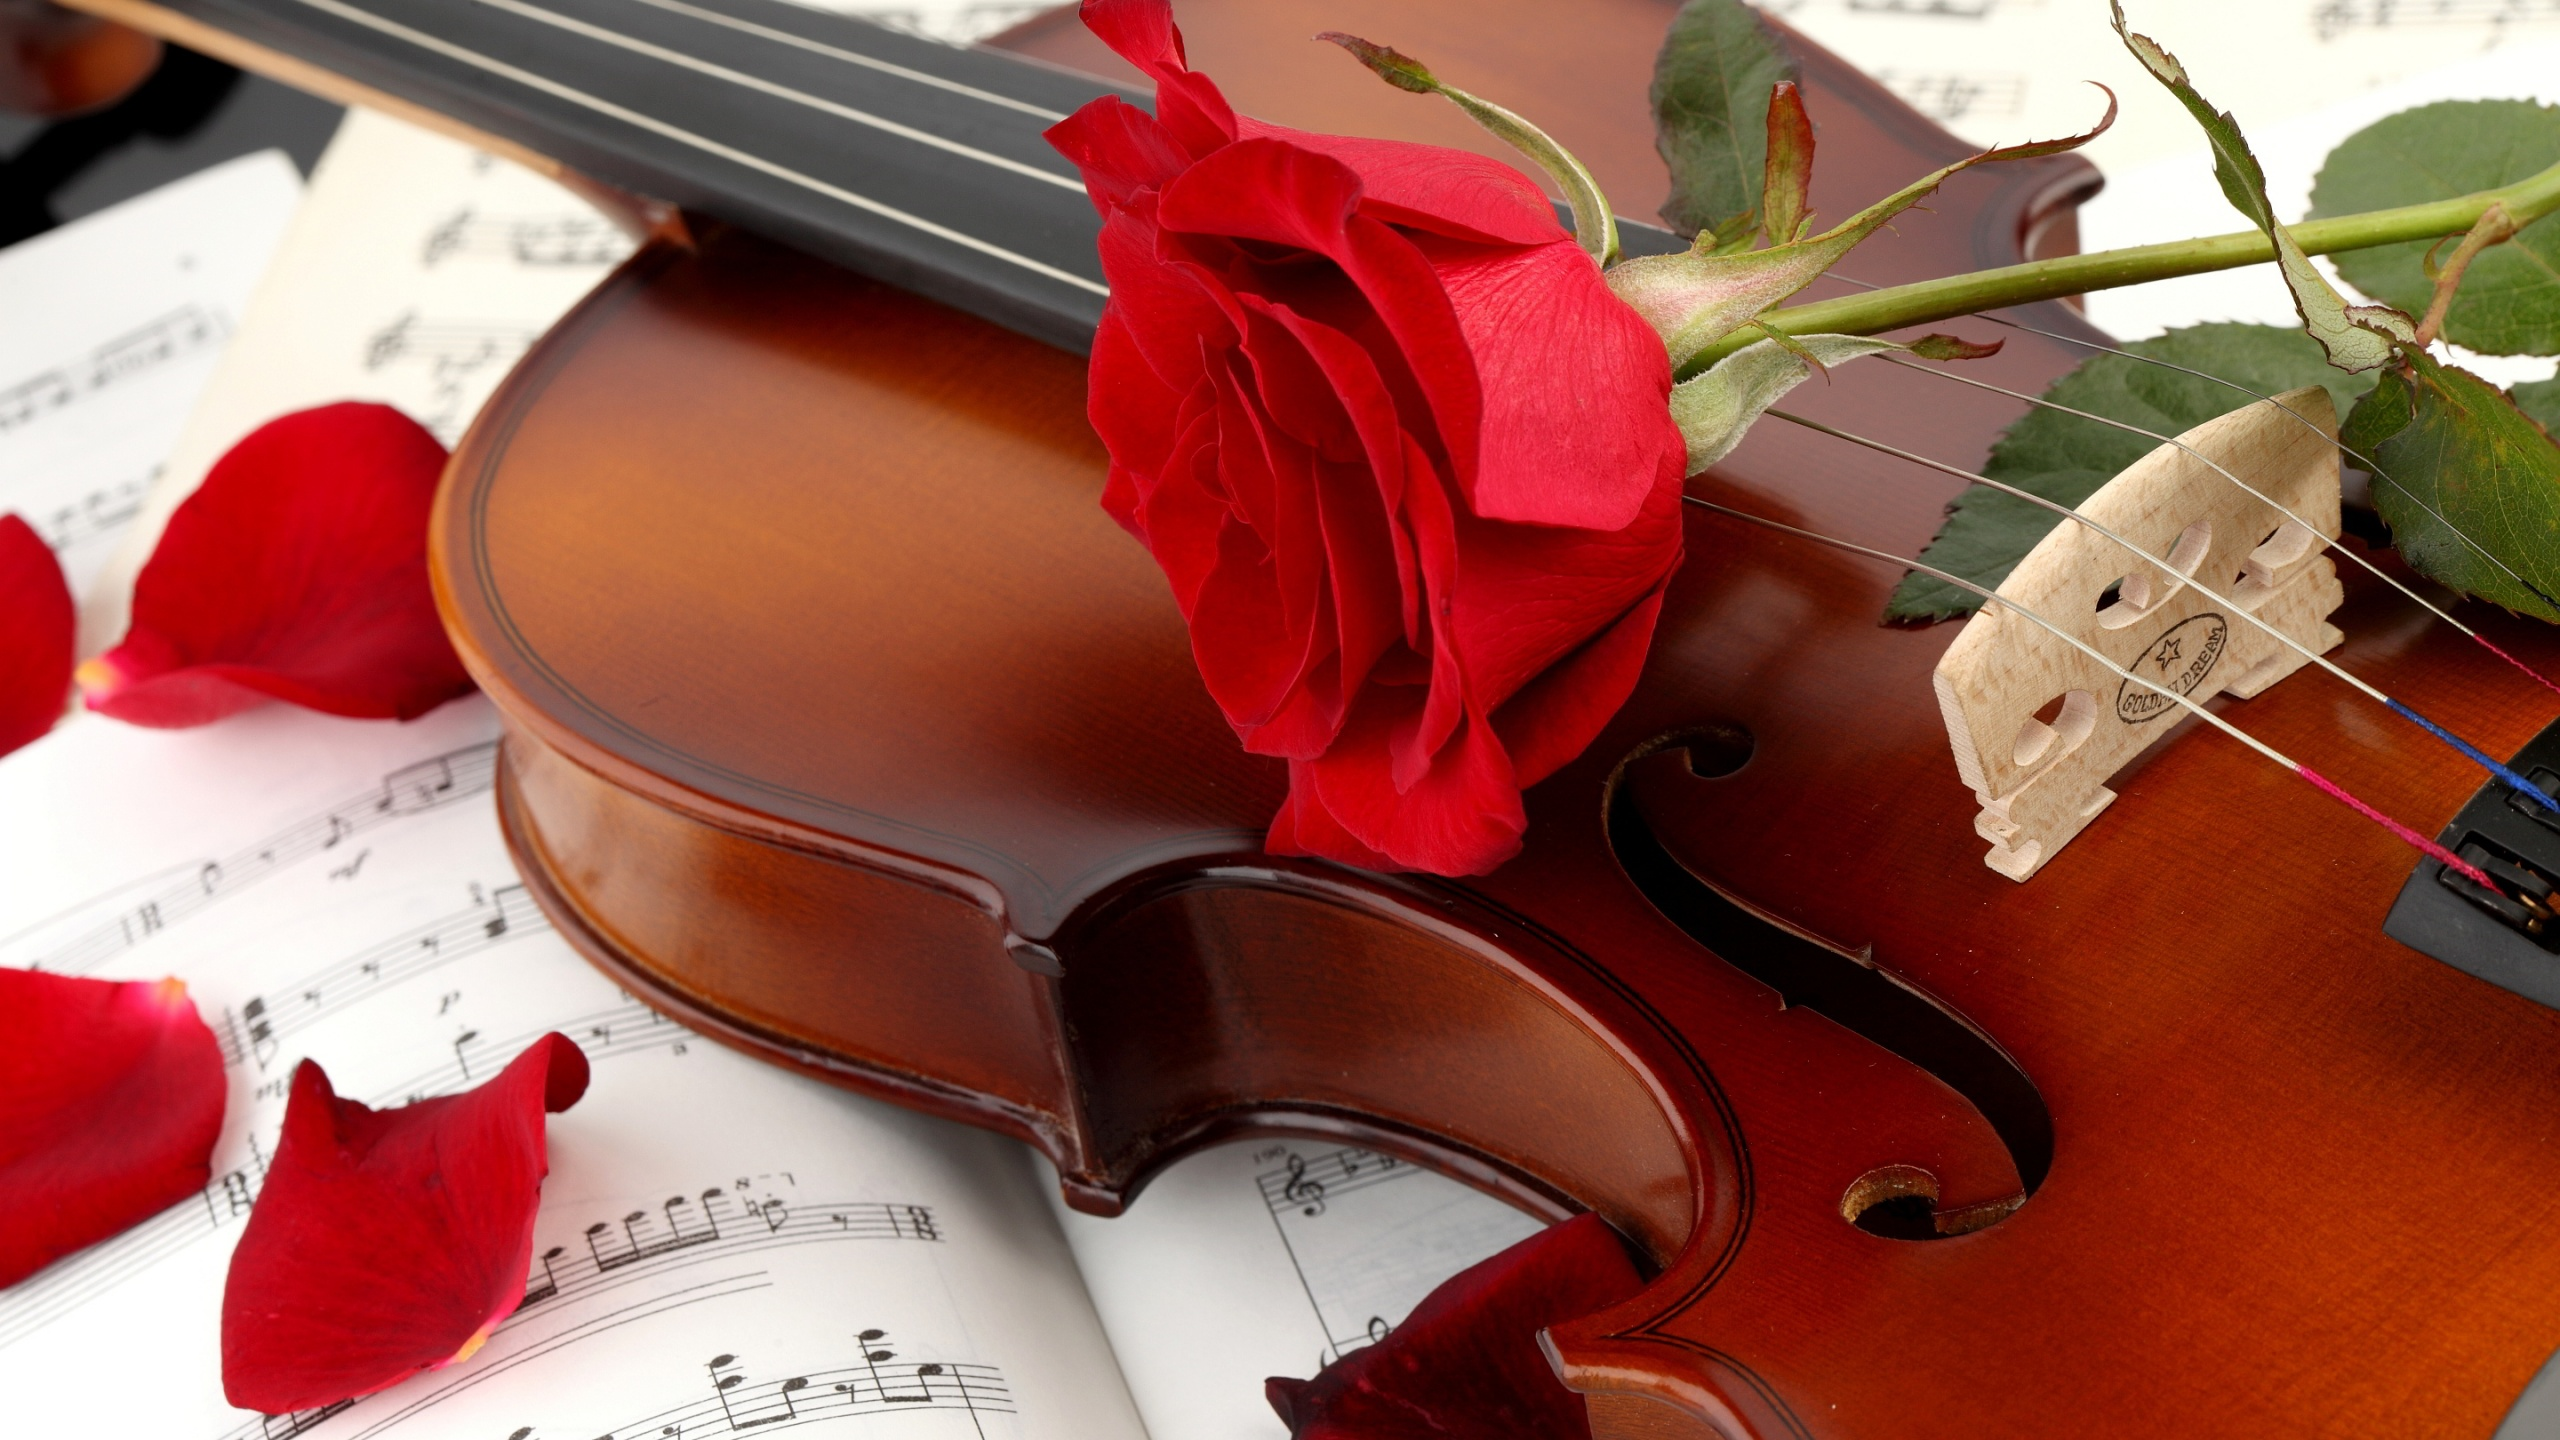 Violin And Red Rose Wallpaper Image